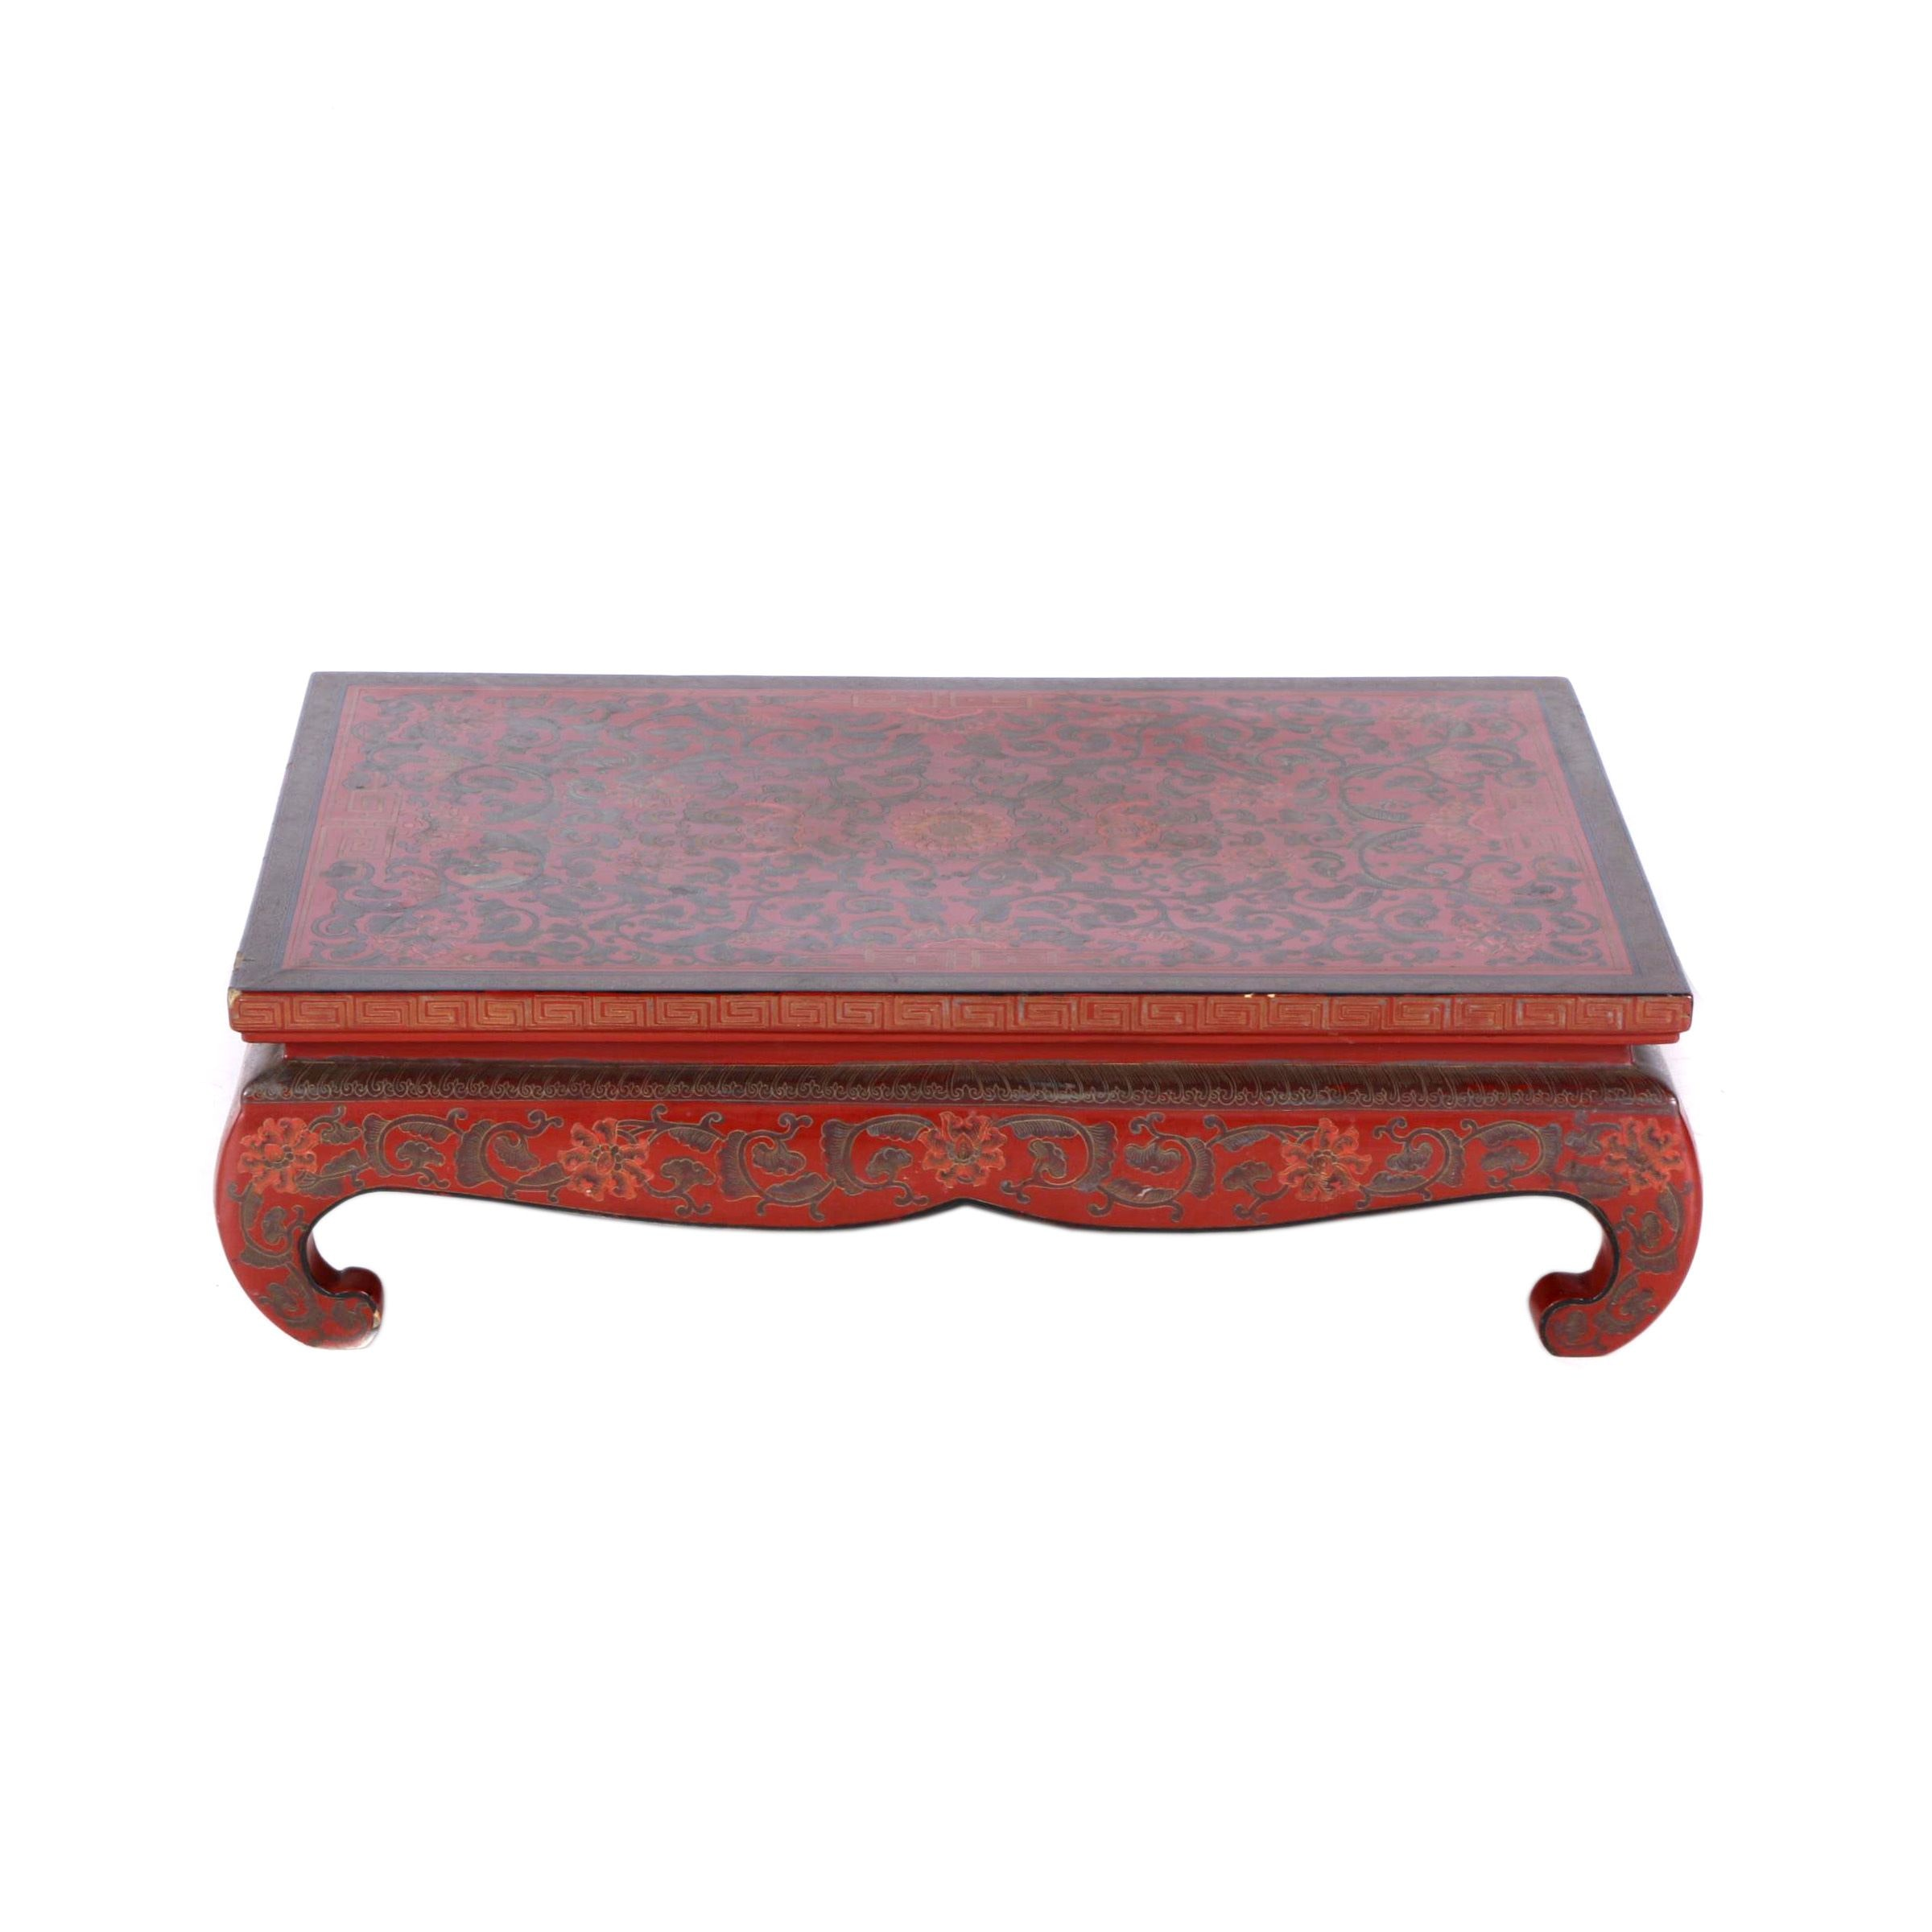 Antique Chinese Wooden Tea Tray